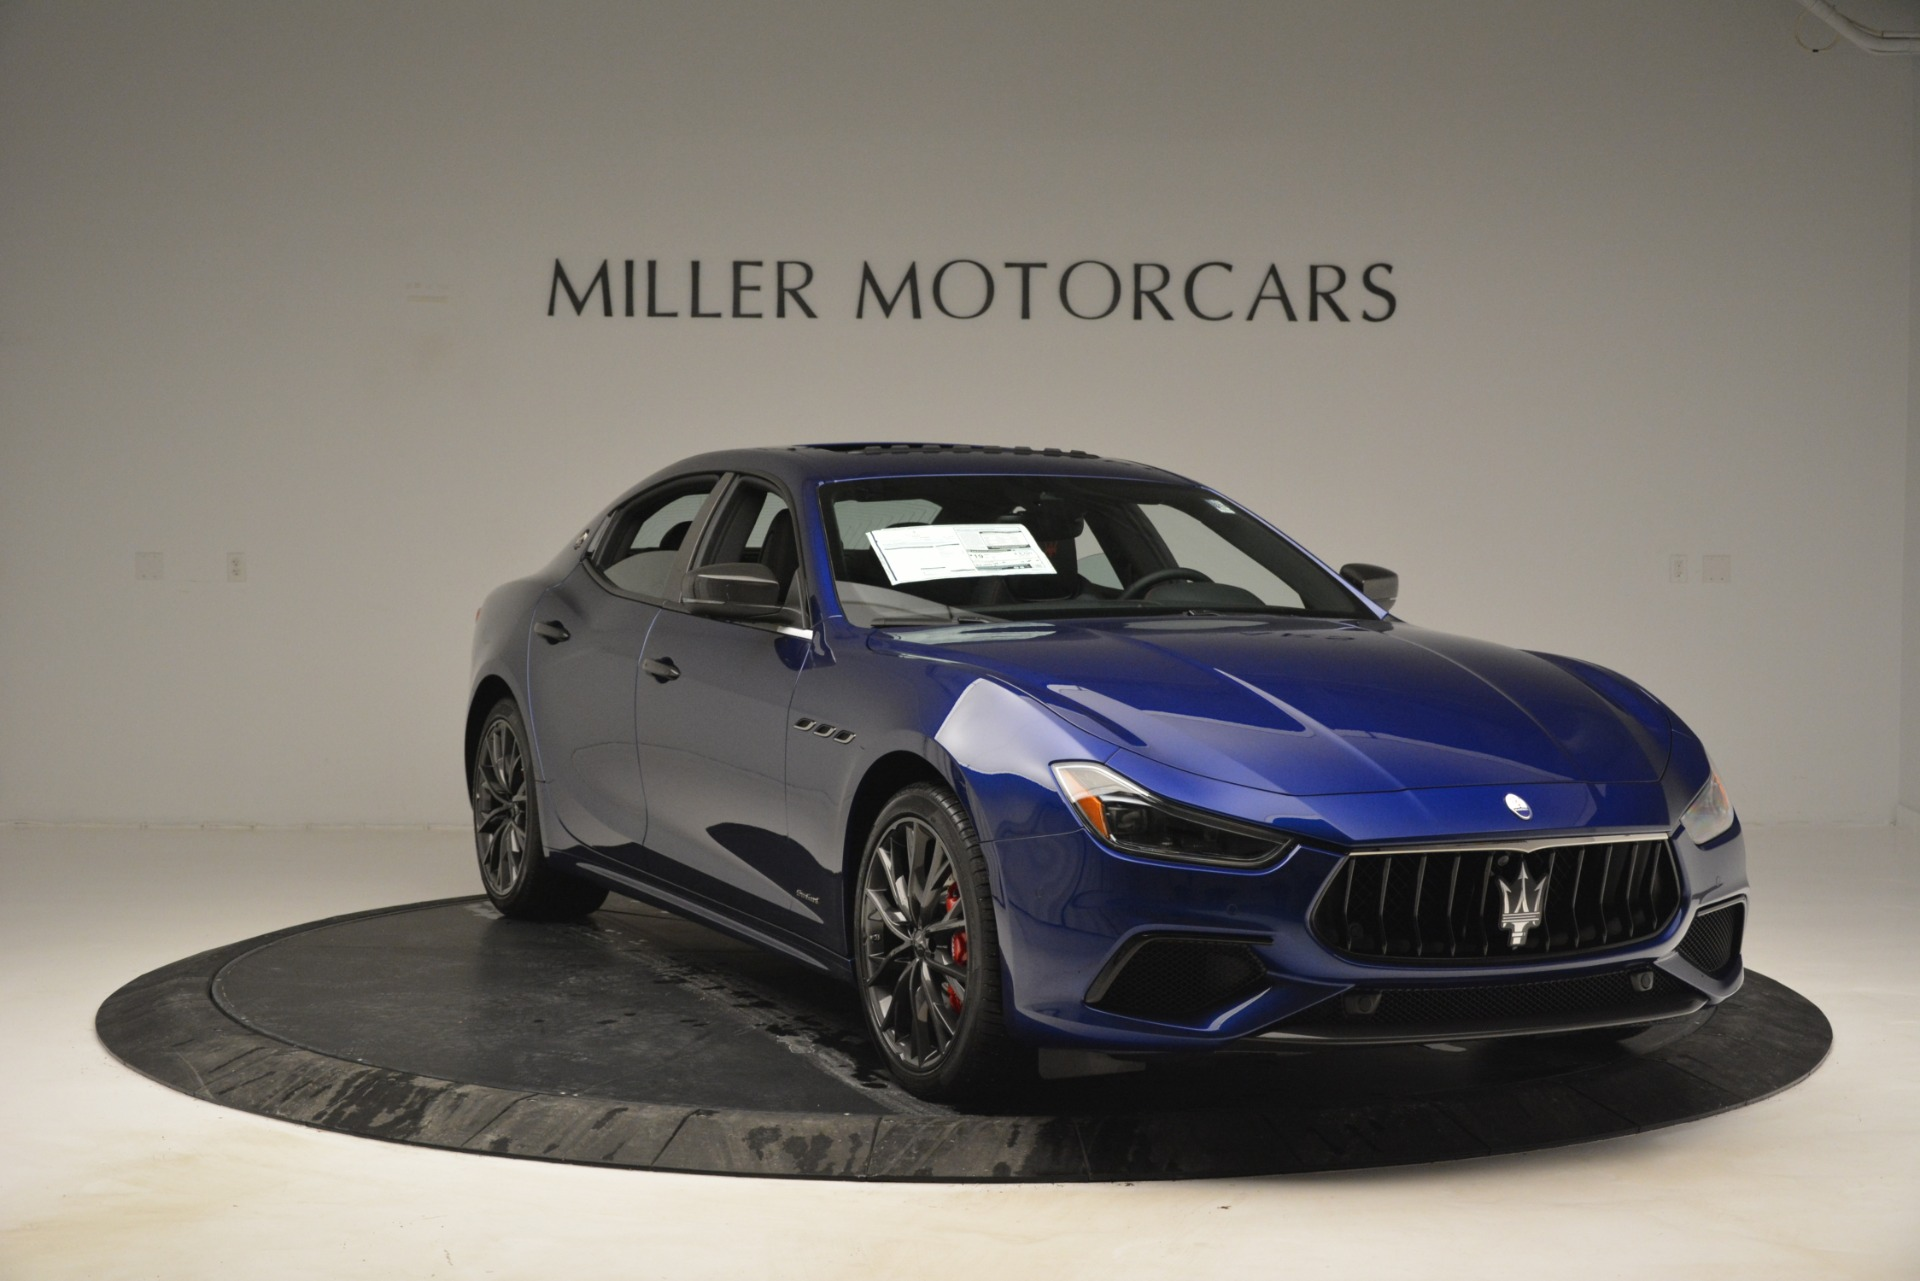 New 2019 Maserati Ghibli S Q4 GranSport For Sale In Westport, CT 2928_p11